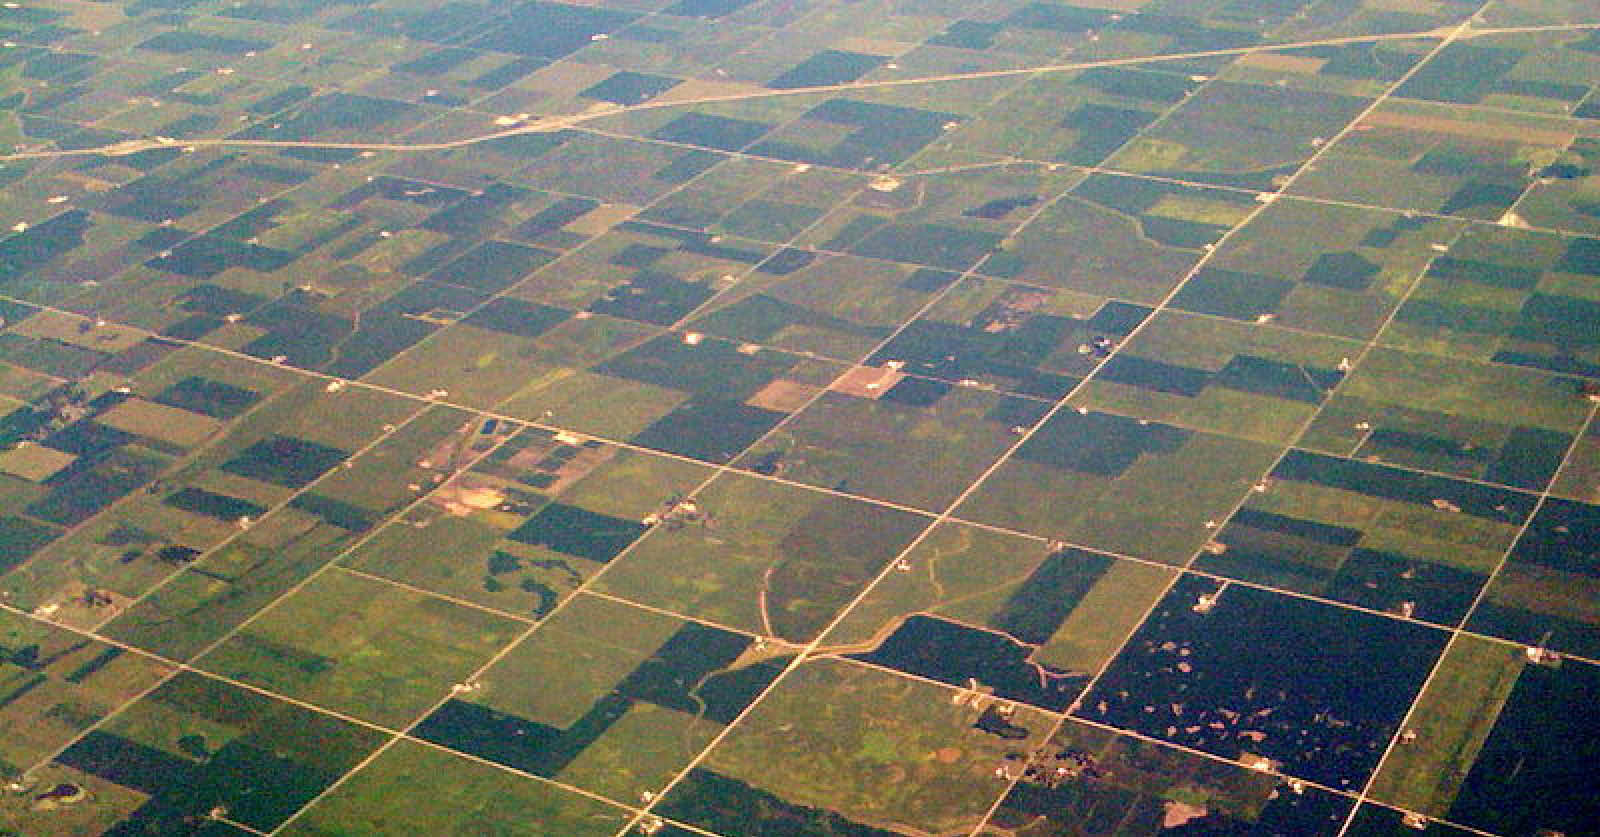 Benefits of Strengthening Agriculture Conservation Compliance Standards